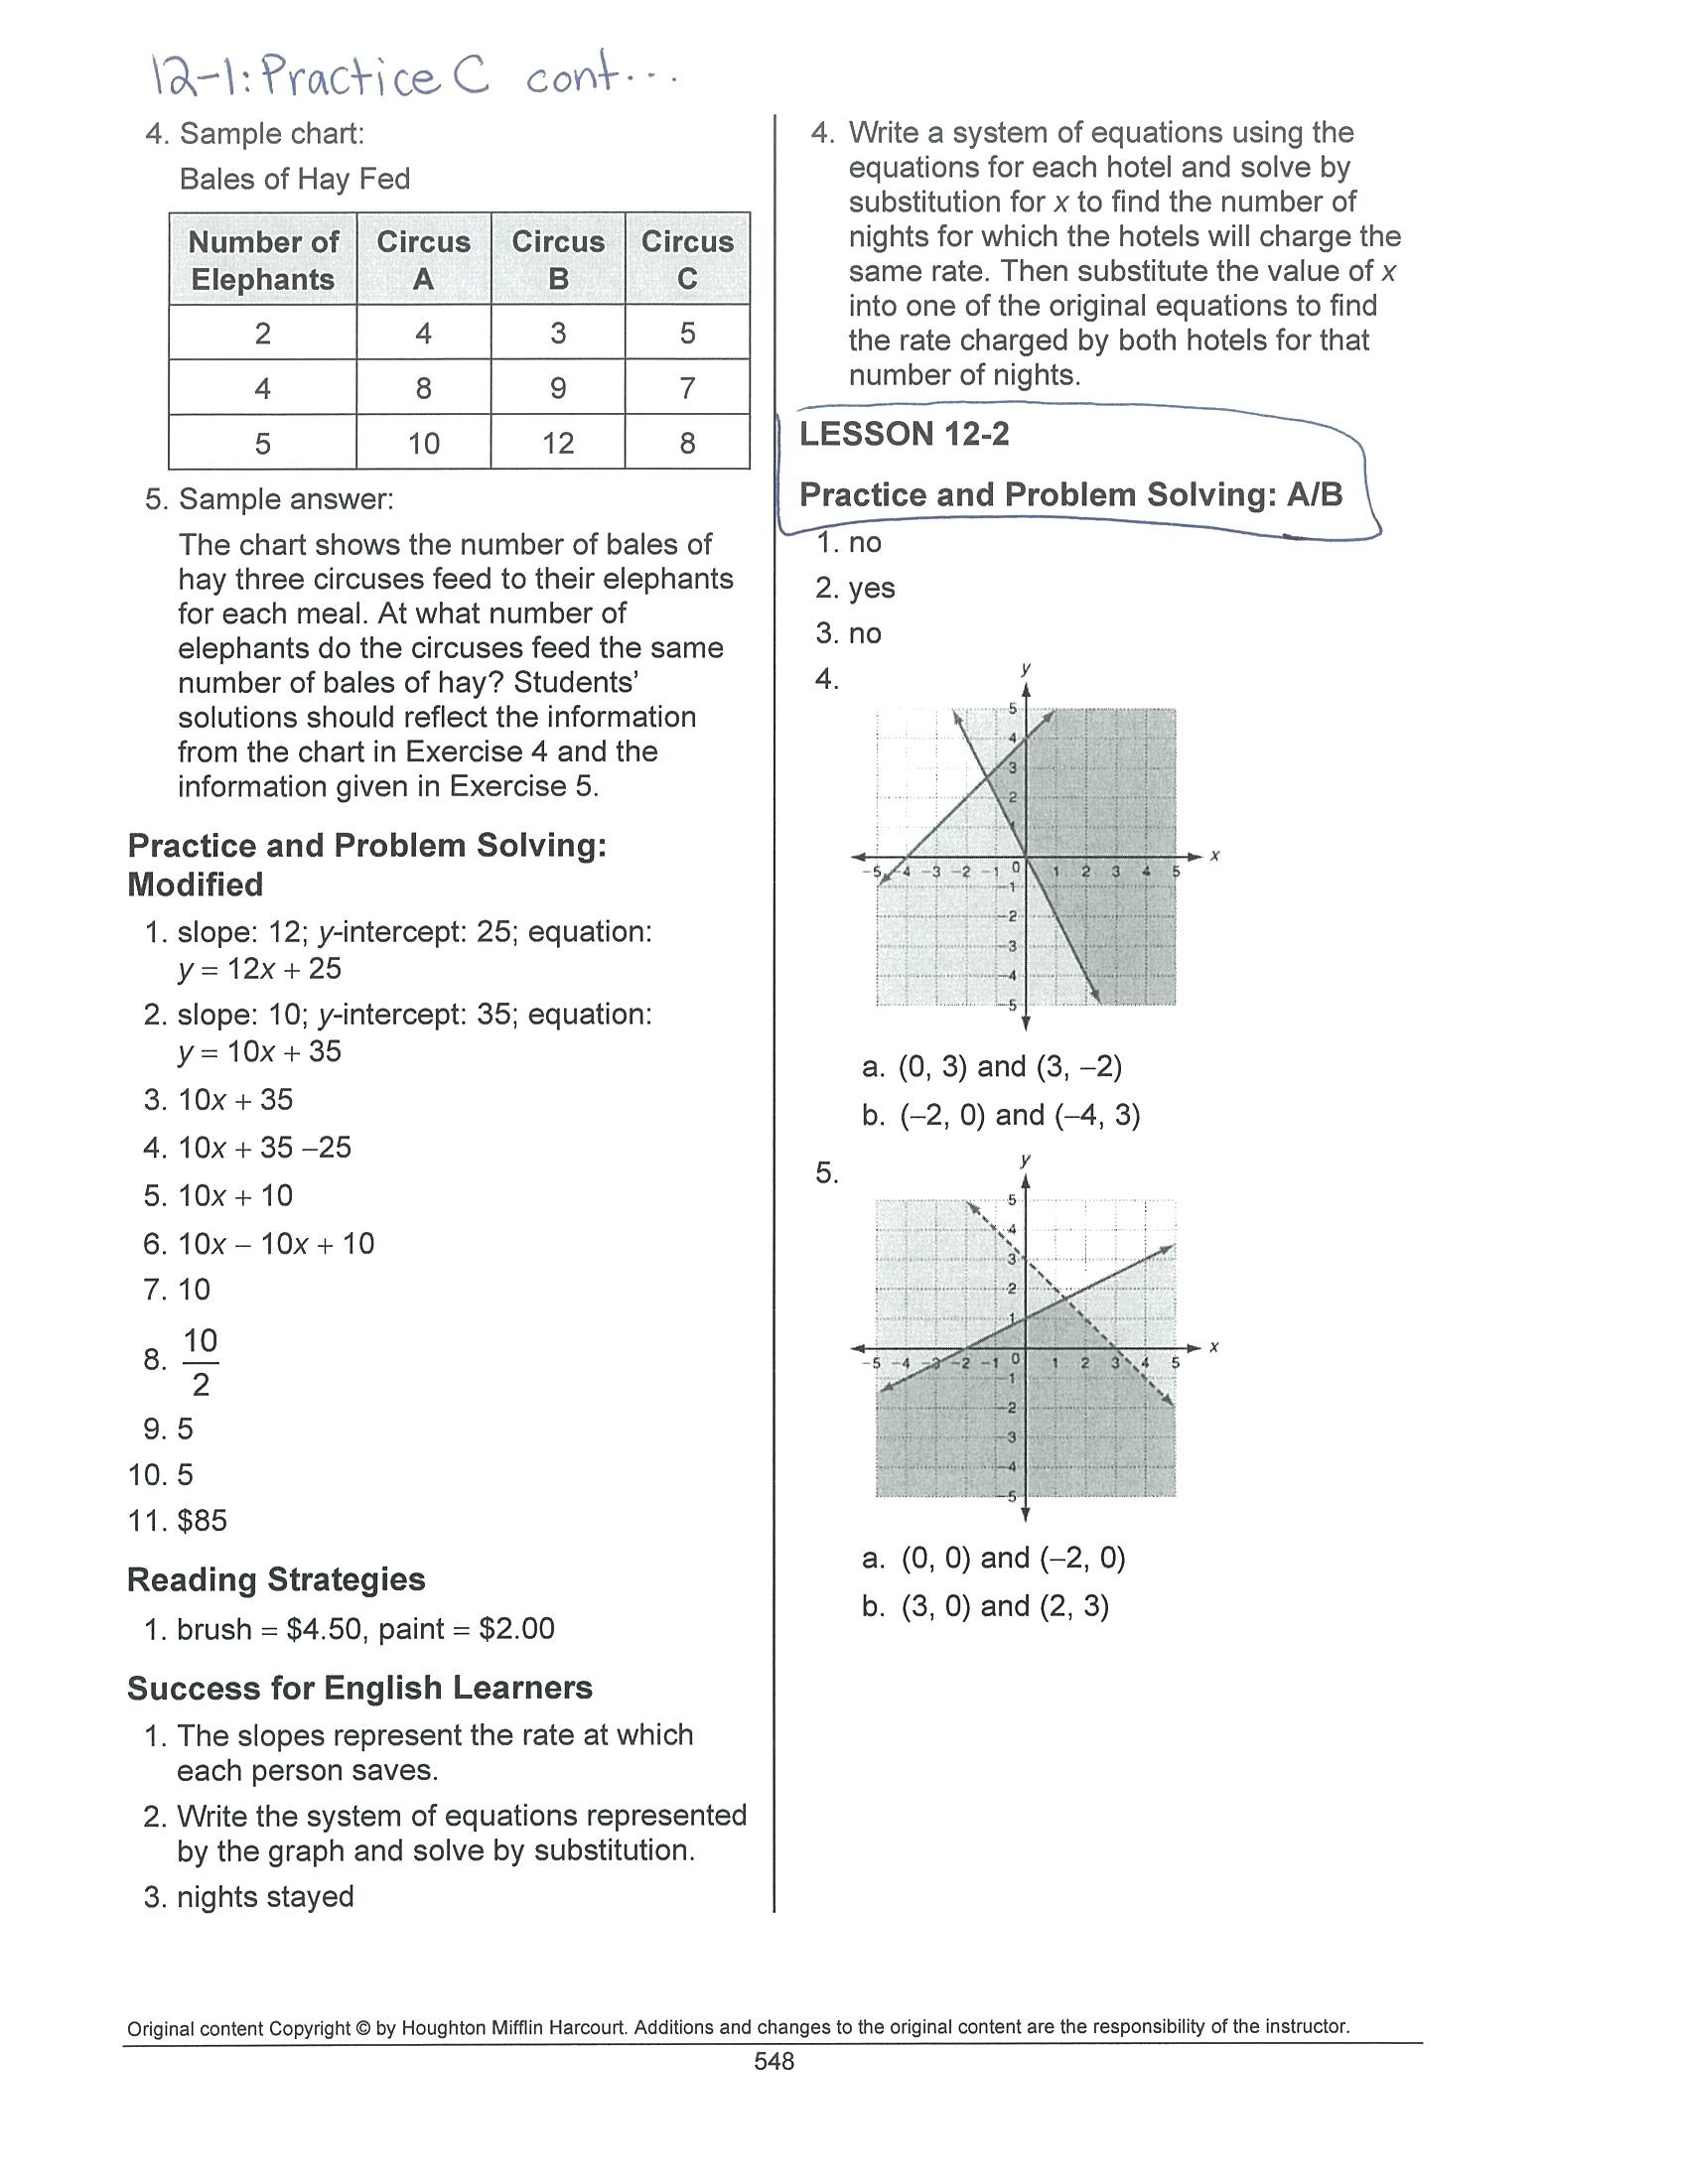 Graphing Absolute Value Functions Worksheet Graphing Absolute Value Functions Worksheet Nidecmege